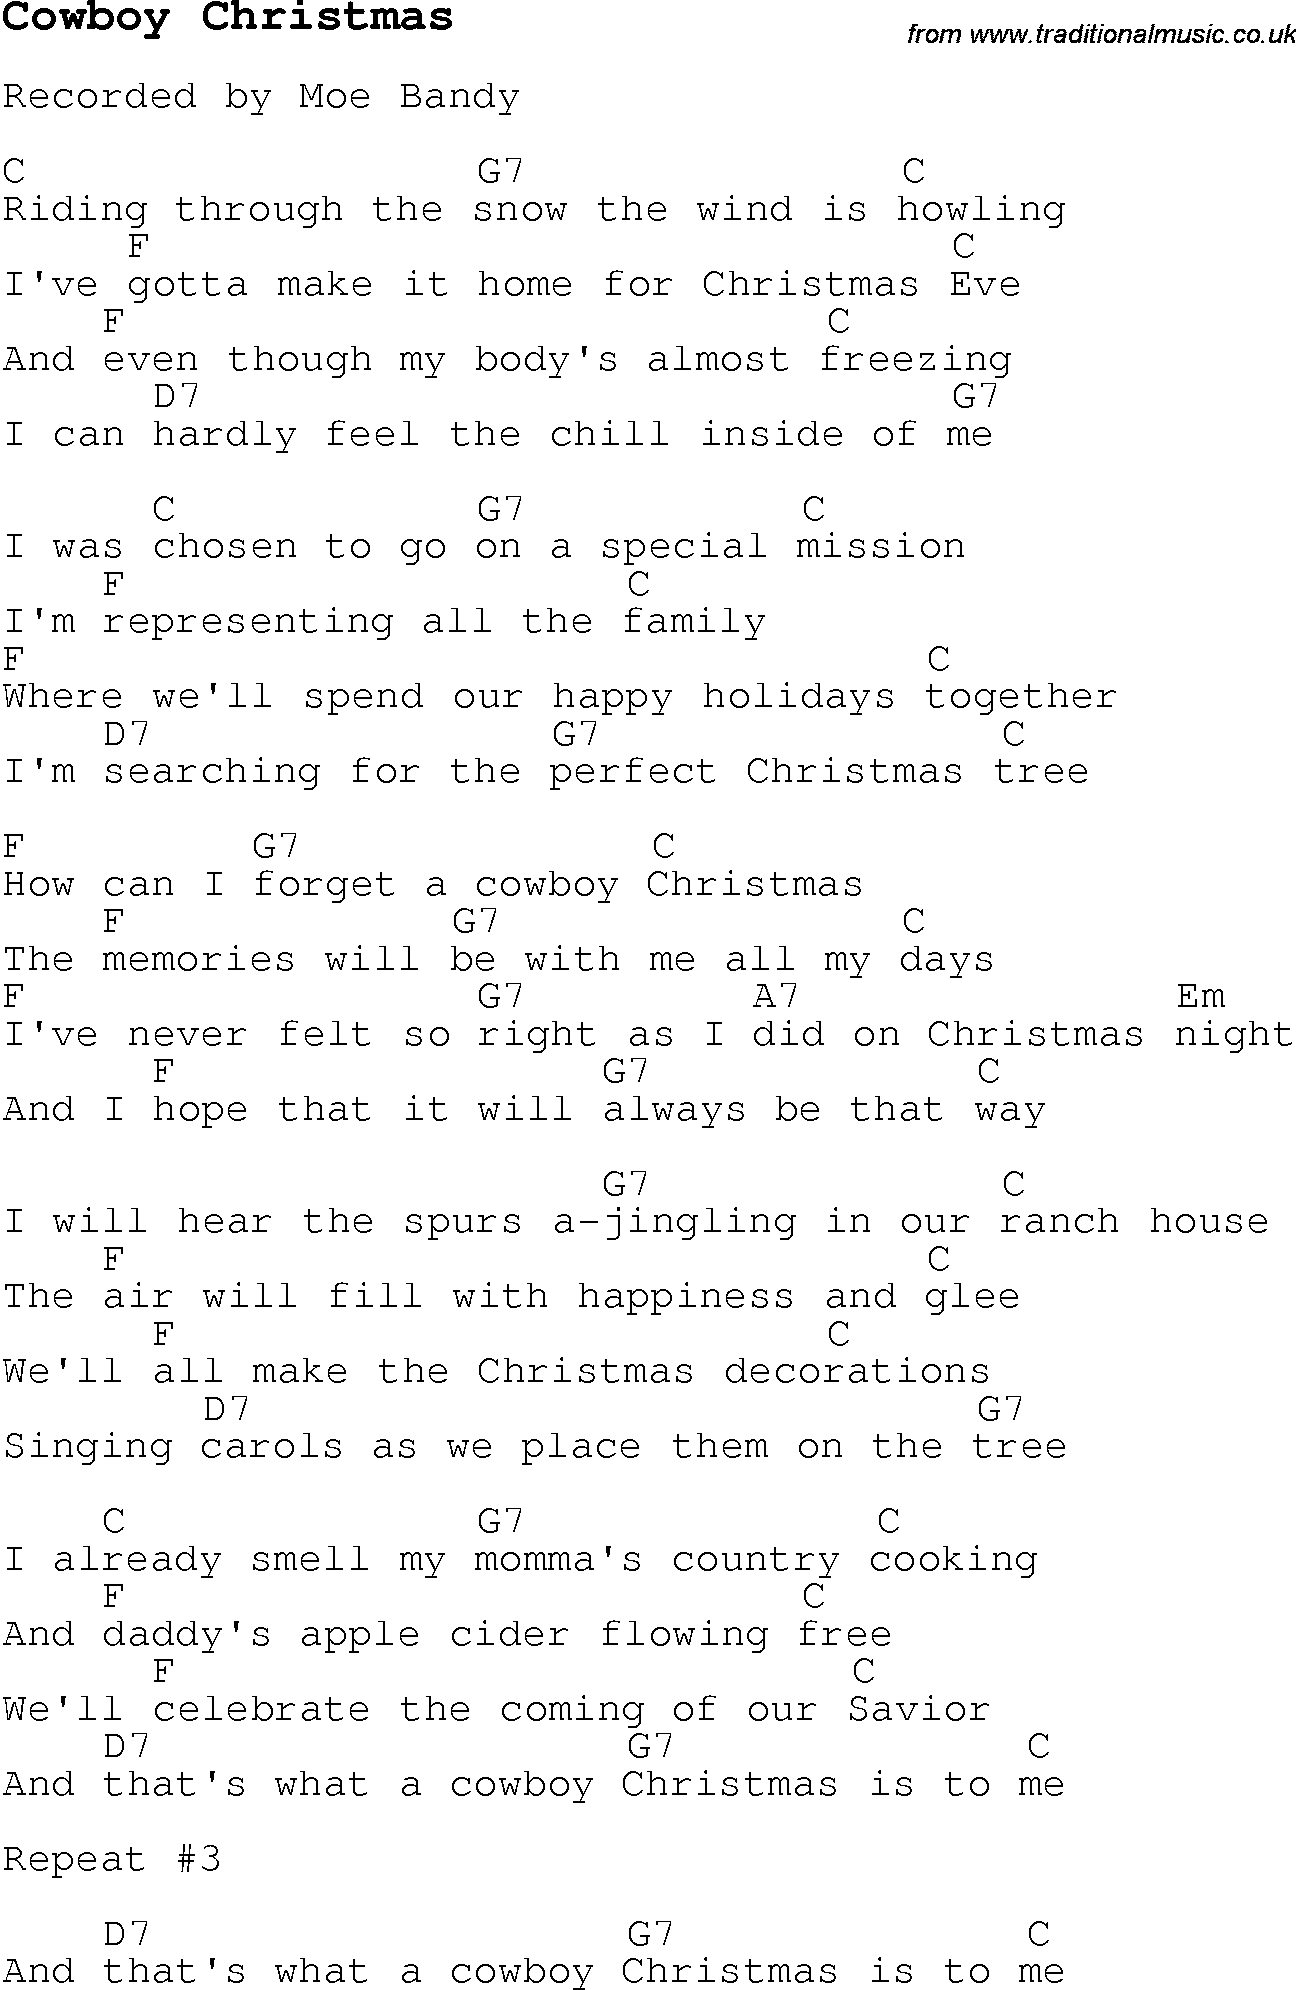 christmas carol song lyrics with chords for cowboy christmas. Black Bedroom Furniture Sets. Home Design Ideas